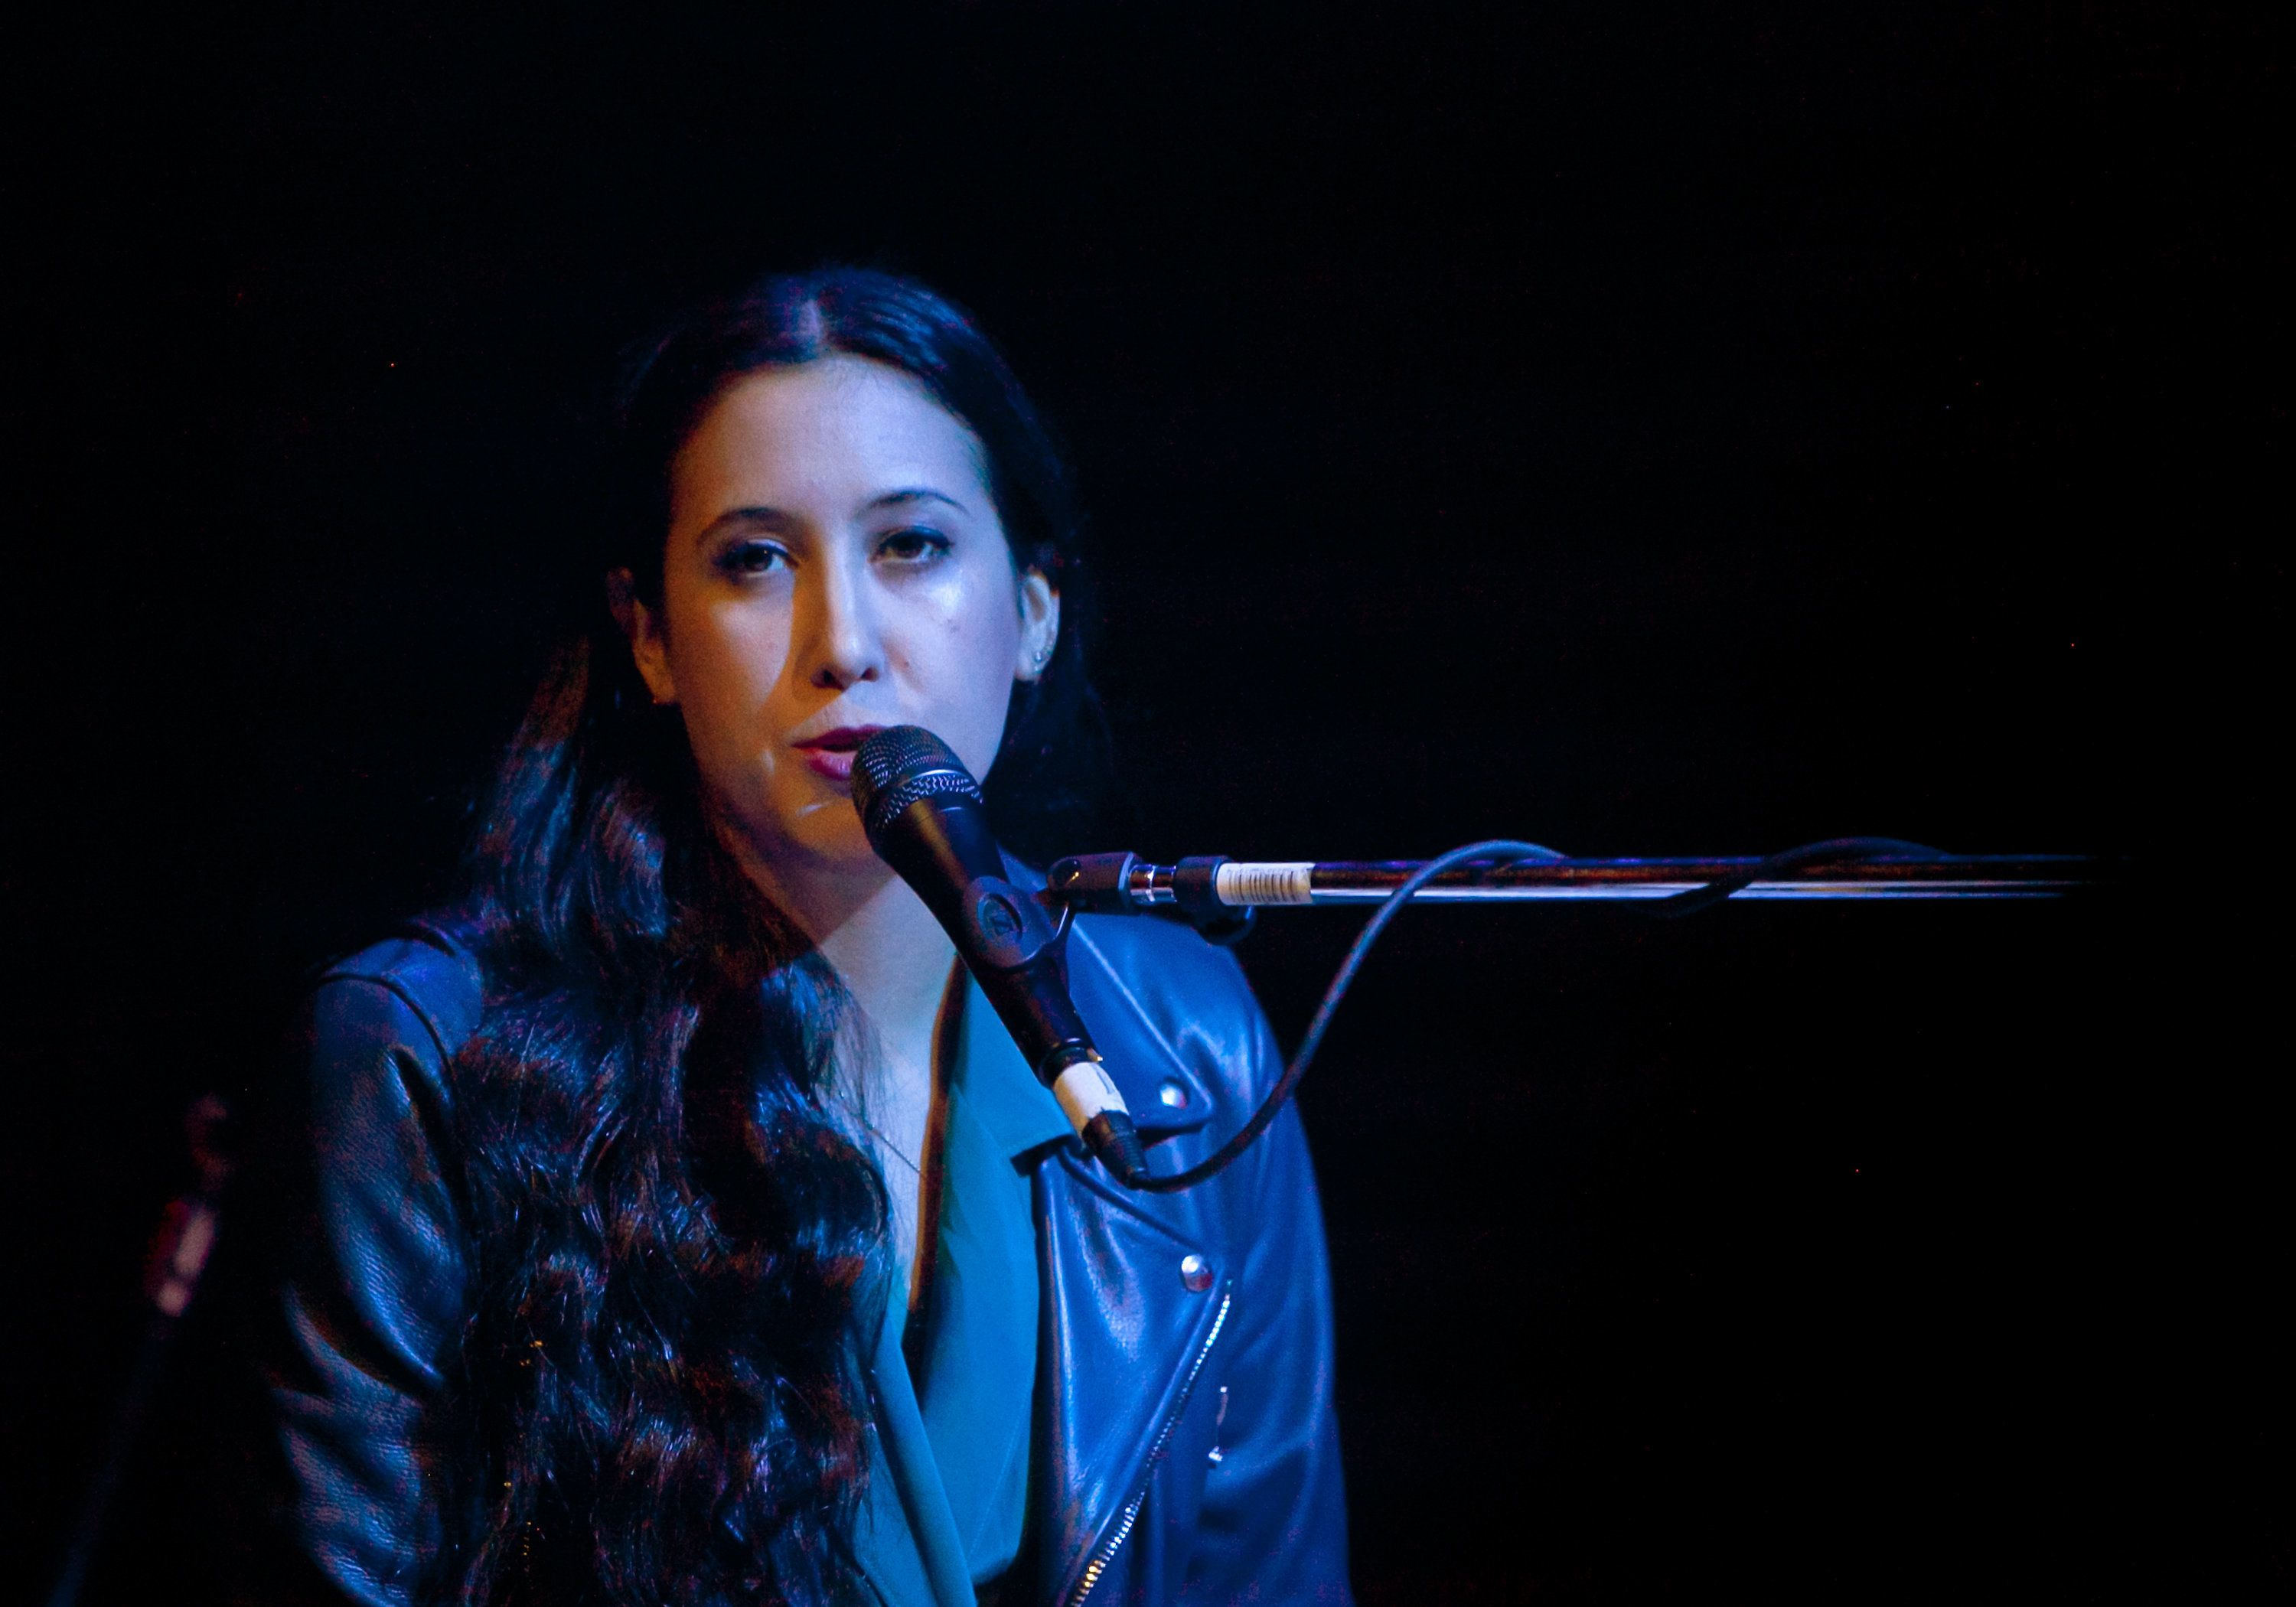 HOLLYWOOD, CA - SEPTEMBER 15:  Vanessa Carlton performs at The Sayers Club on September 15, 2015 in Hollywood, California.  (Photo by Tibrina Hobson/WireImage)